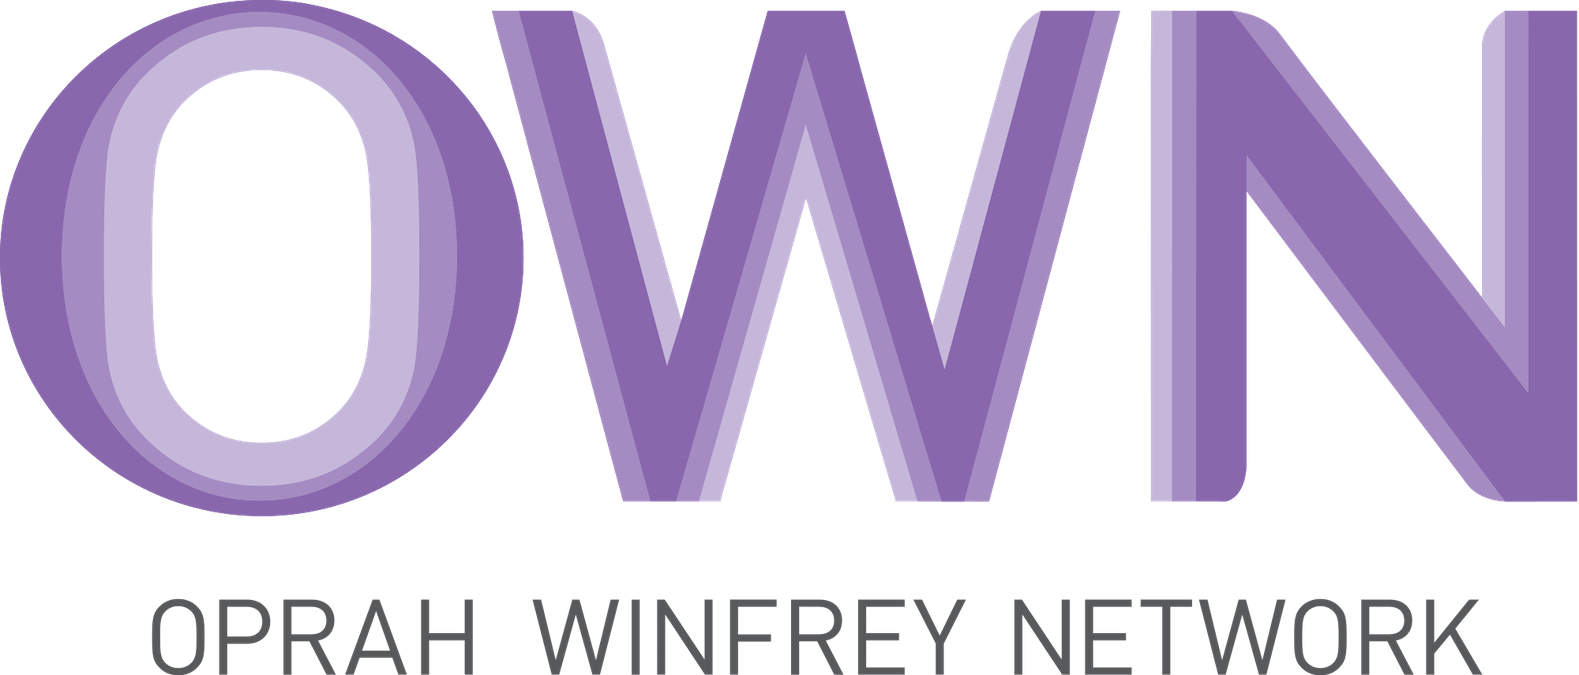 Watch Oprah Winfrey Network (OWN) Without Cable   Grounded Reason